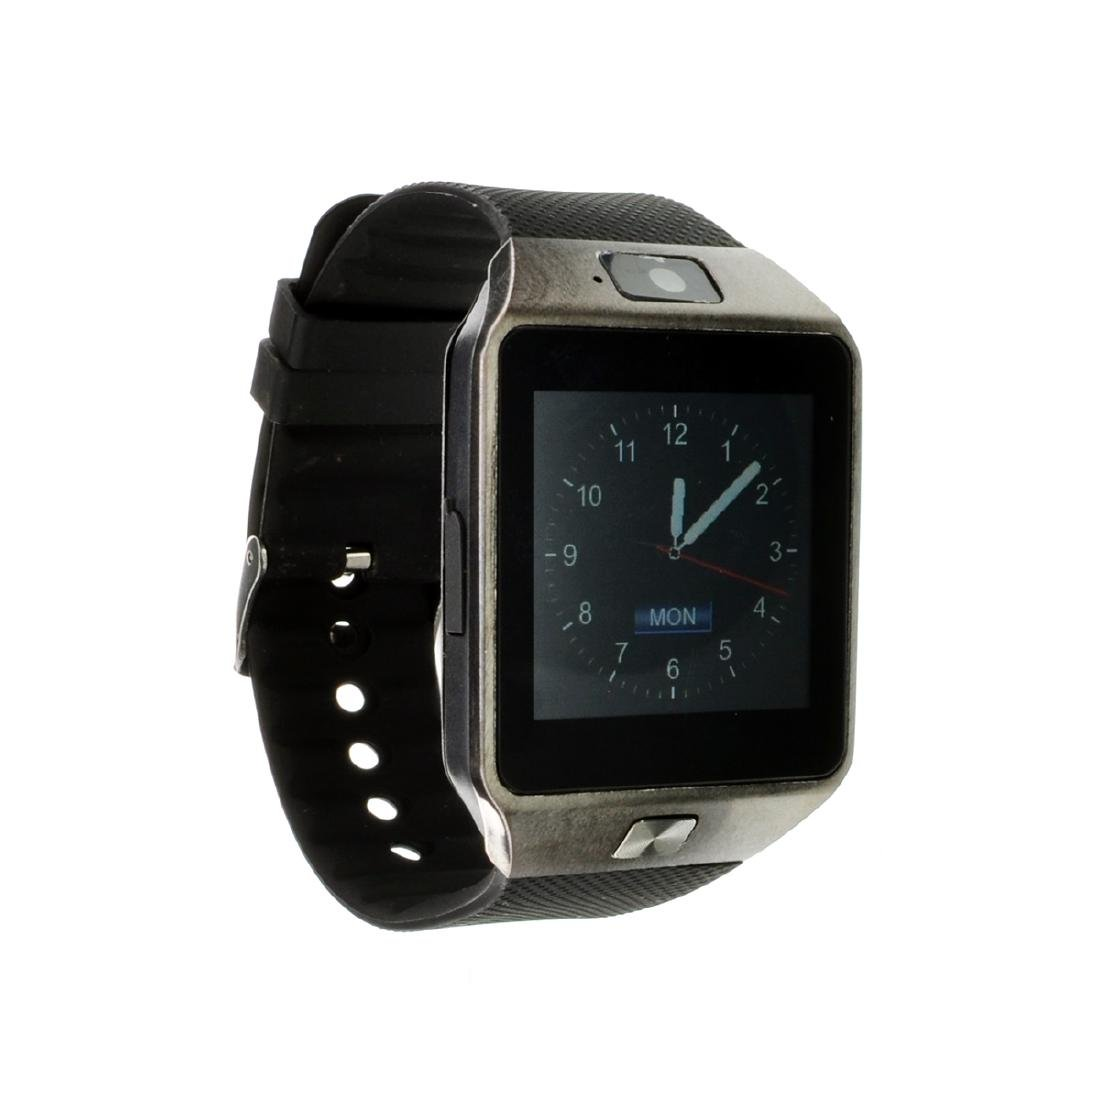 New Black Smart Watch With Charger